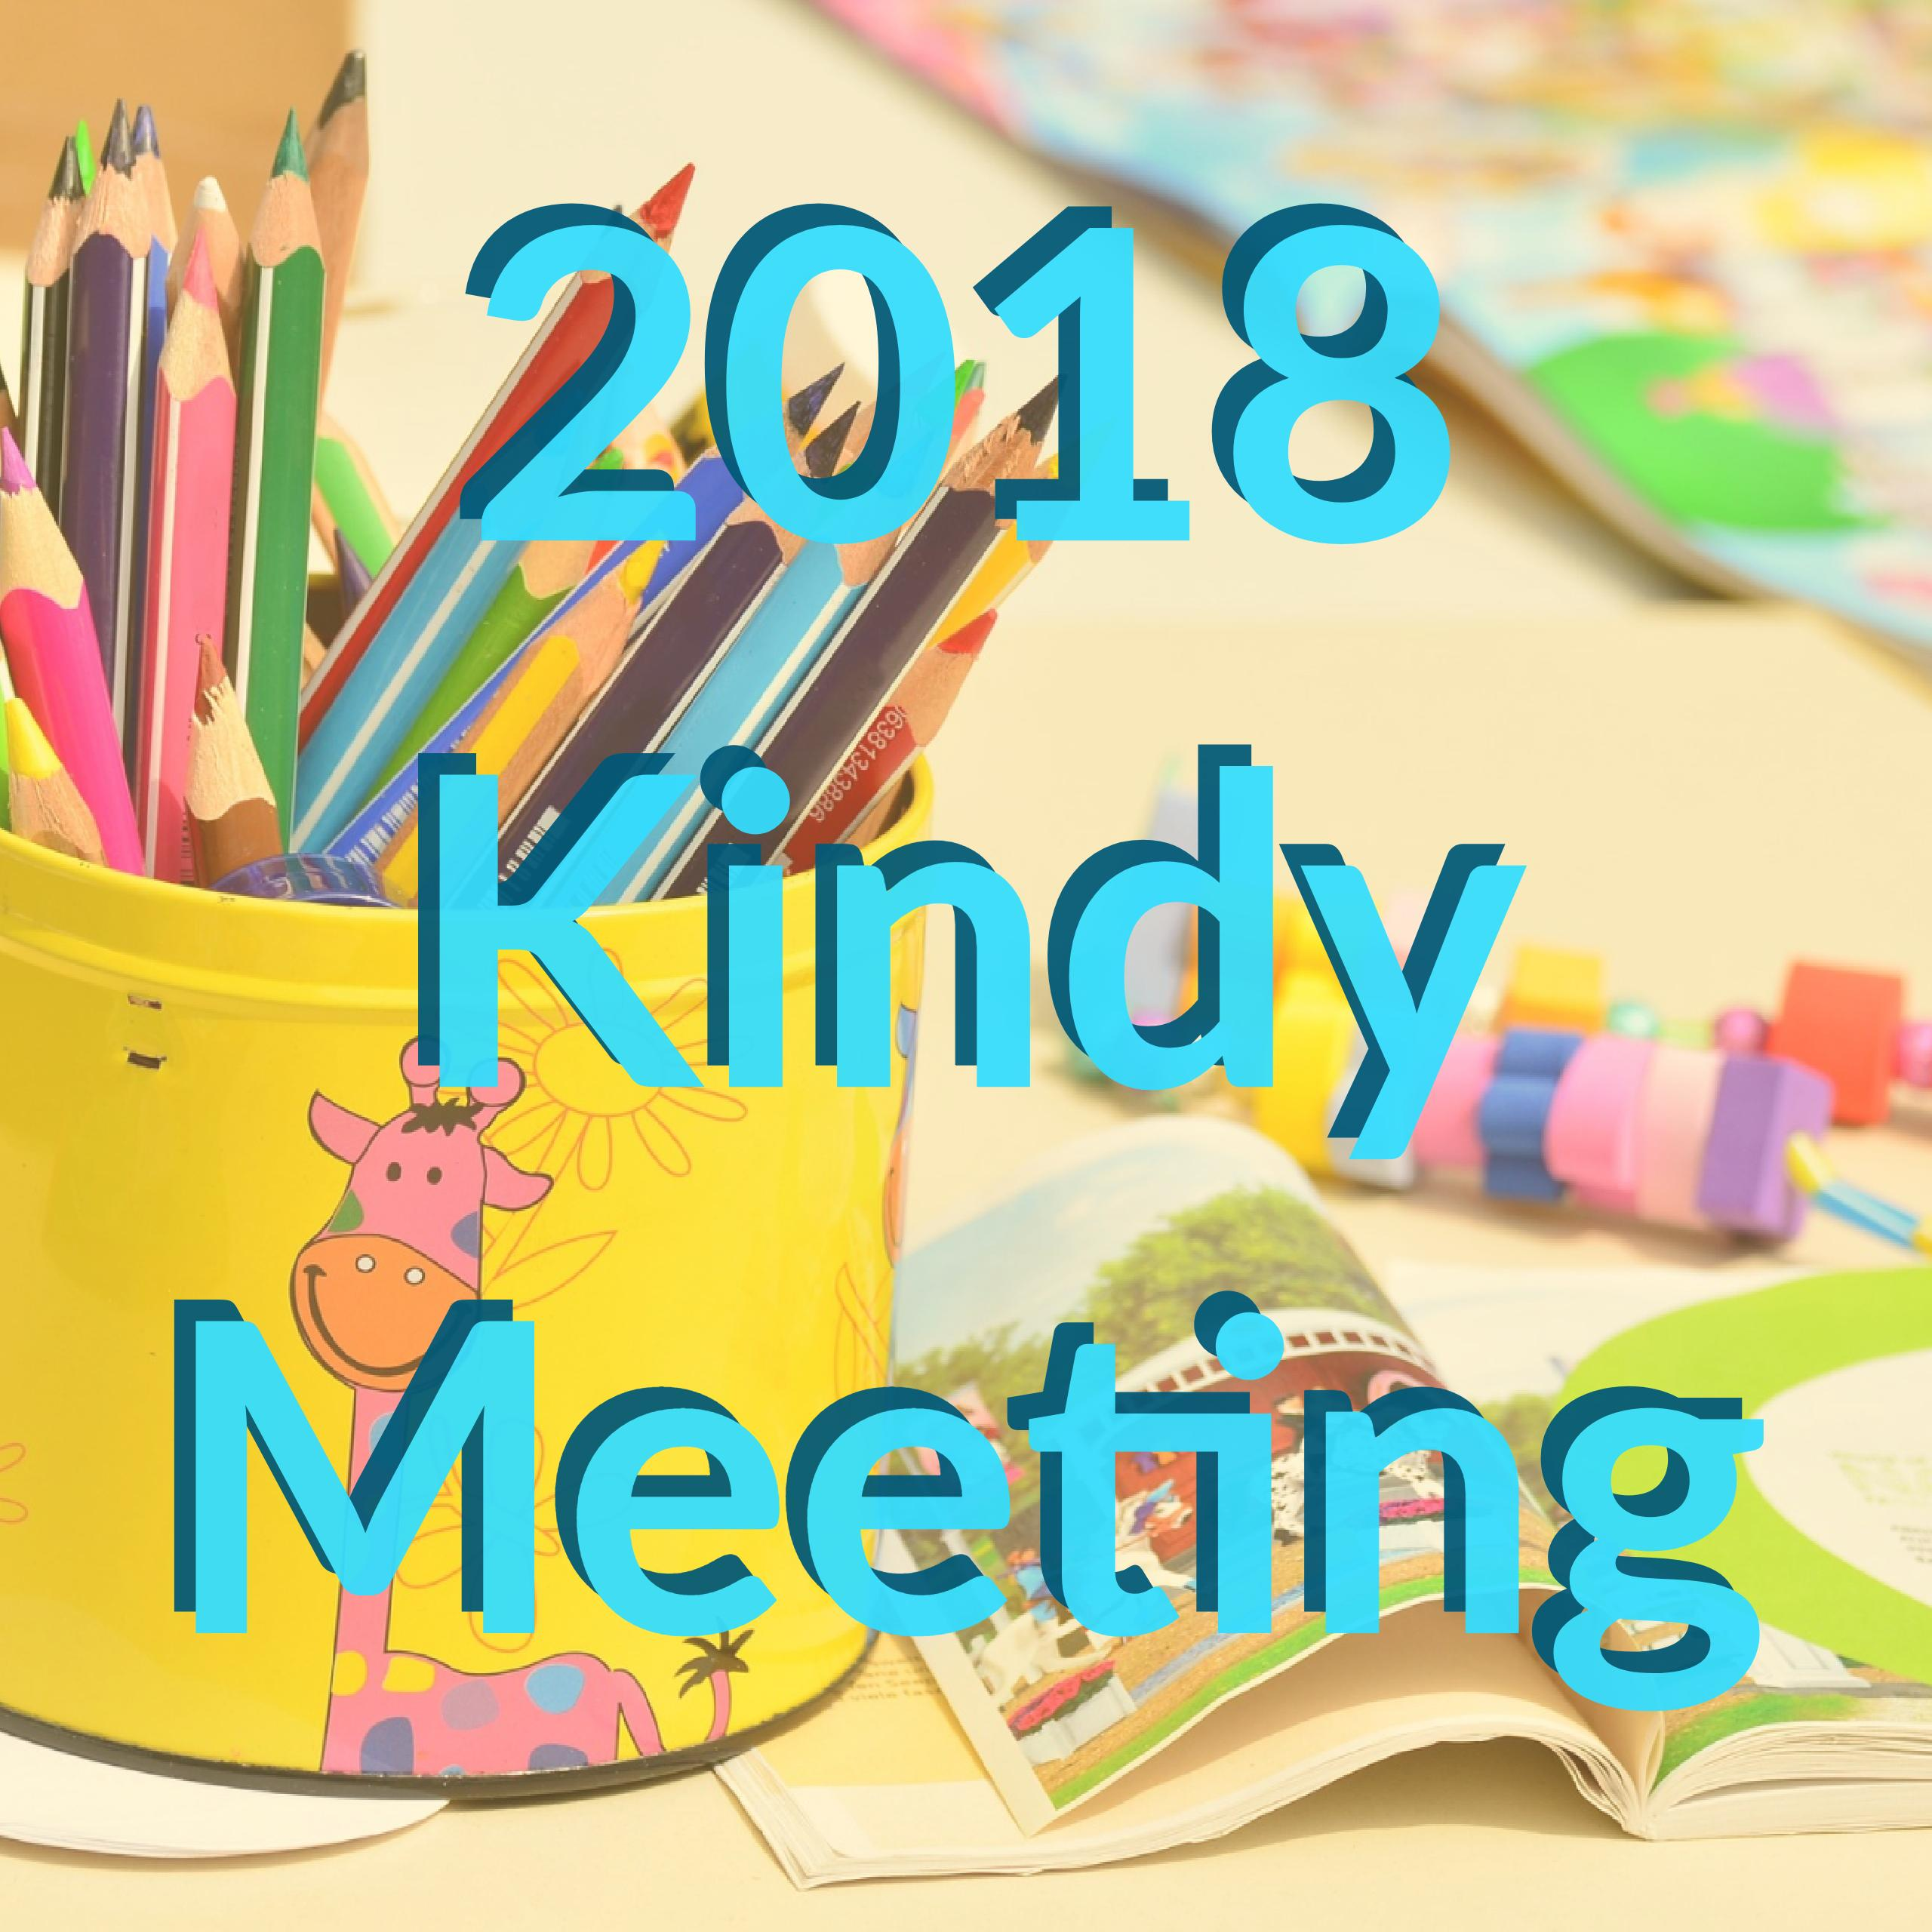 2018 Kindy Meeting